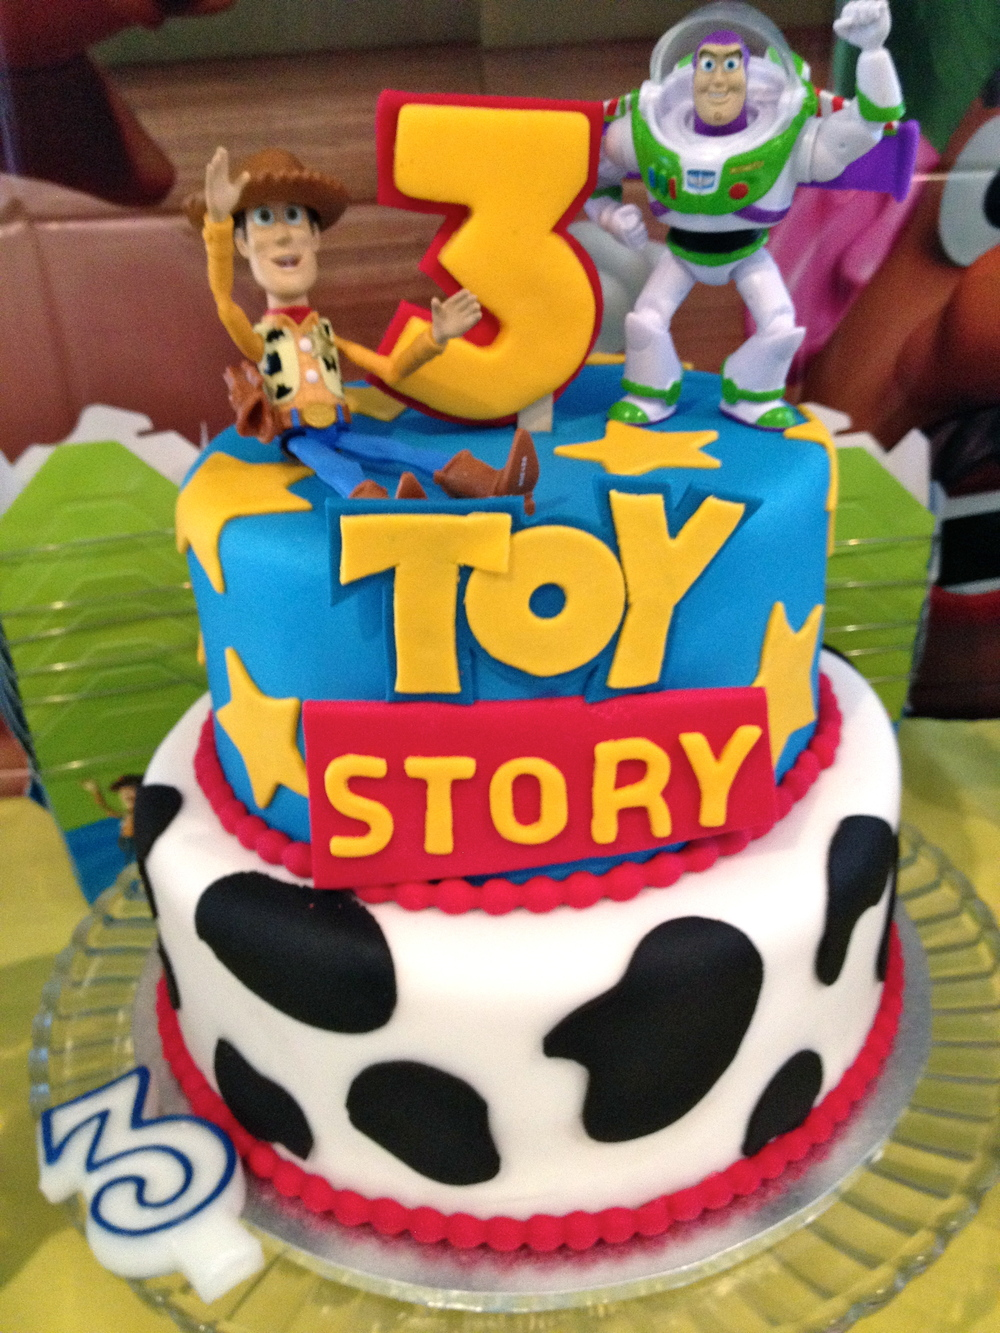 Toy Story Birthday Party THE DETAILS